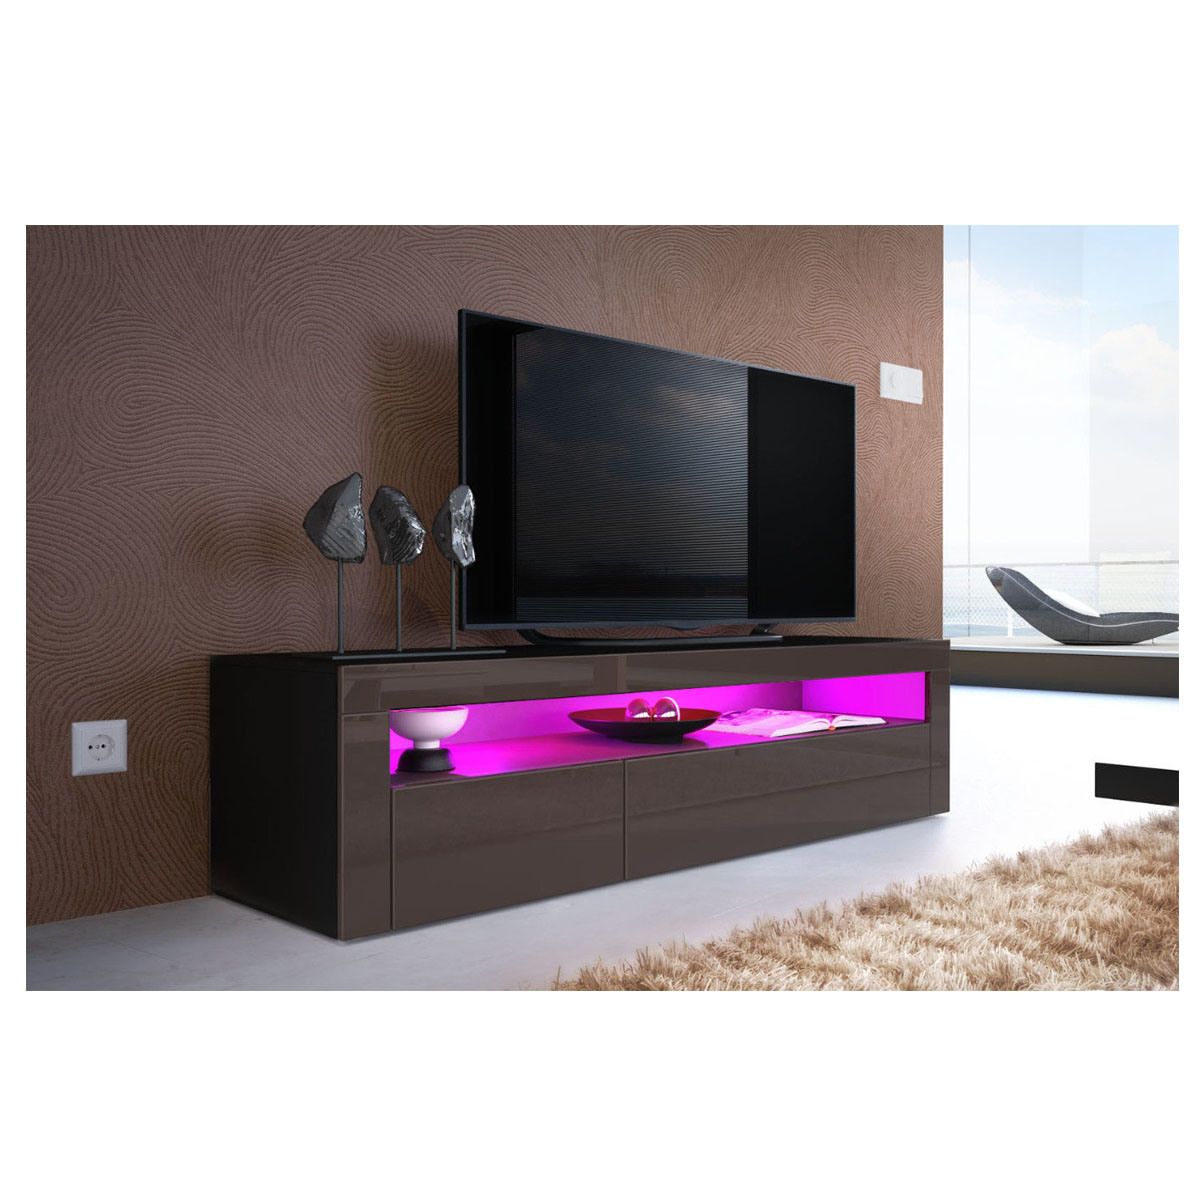 China High Gloss Uv Black Led Light Sideboard Tv Unit With Dillon Black Tv Unit Stands (View 2 of 20)